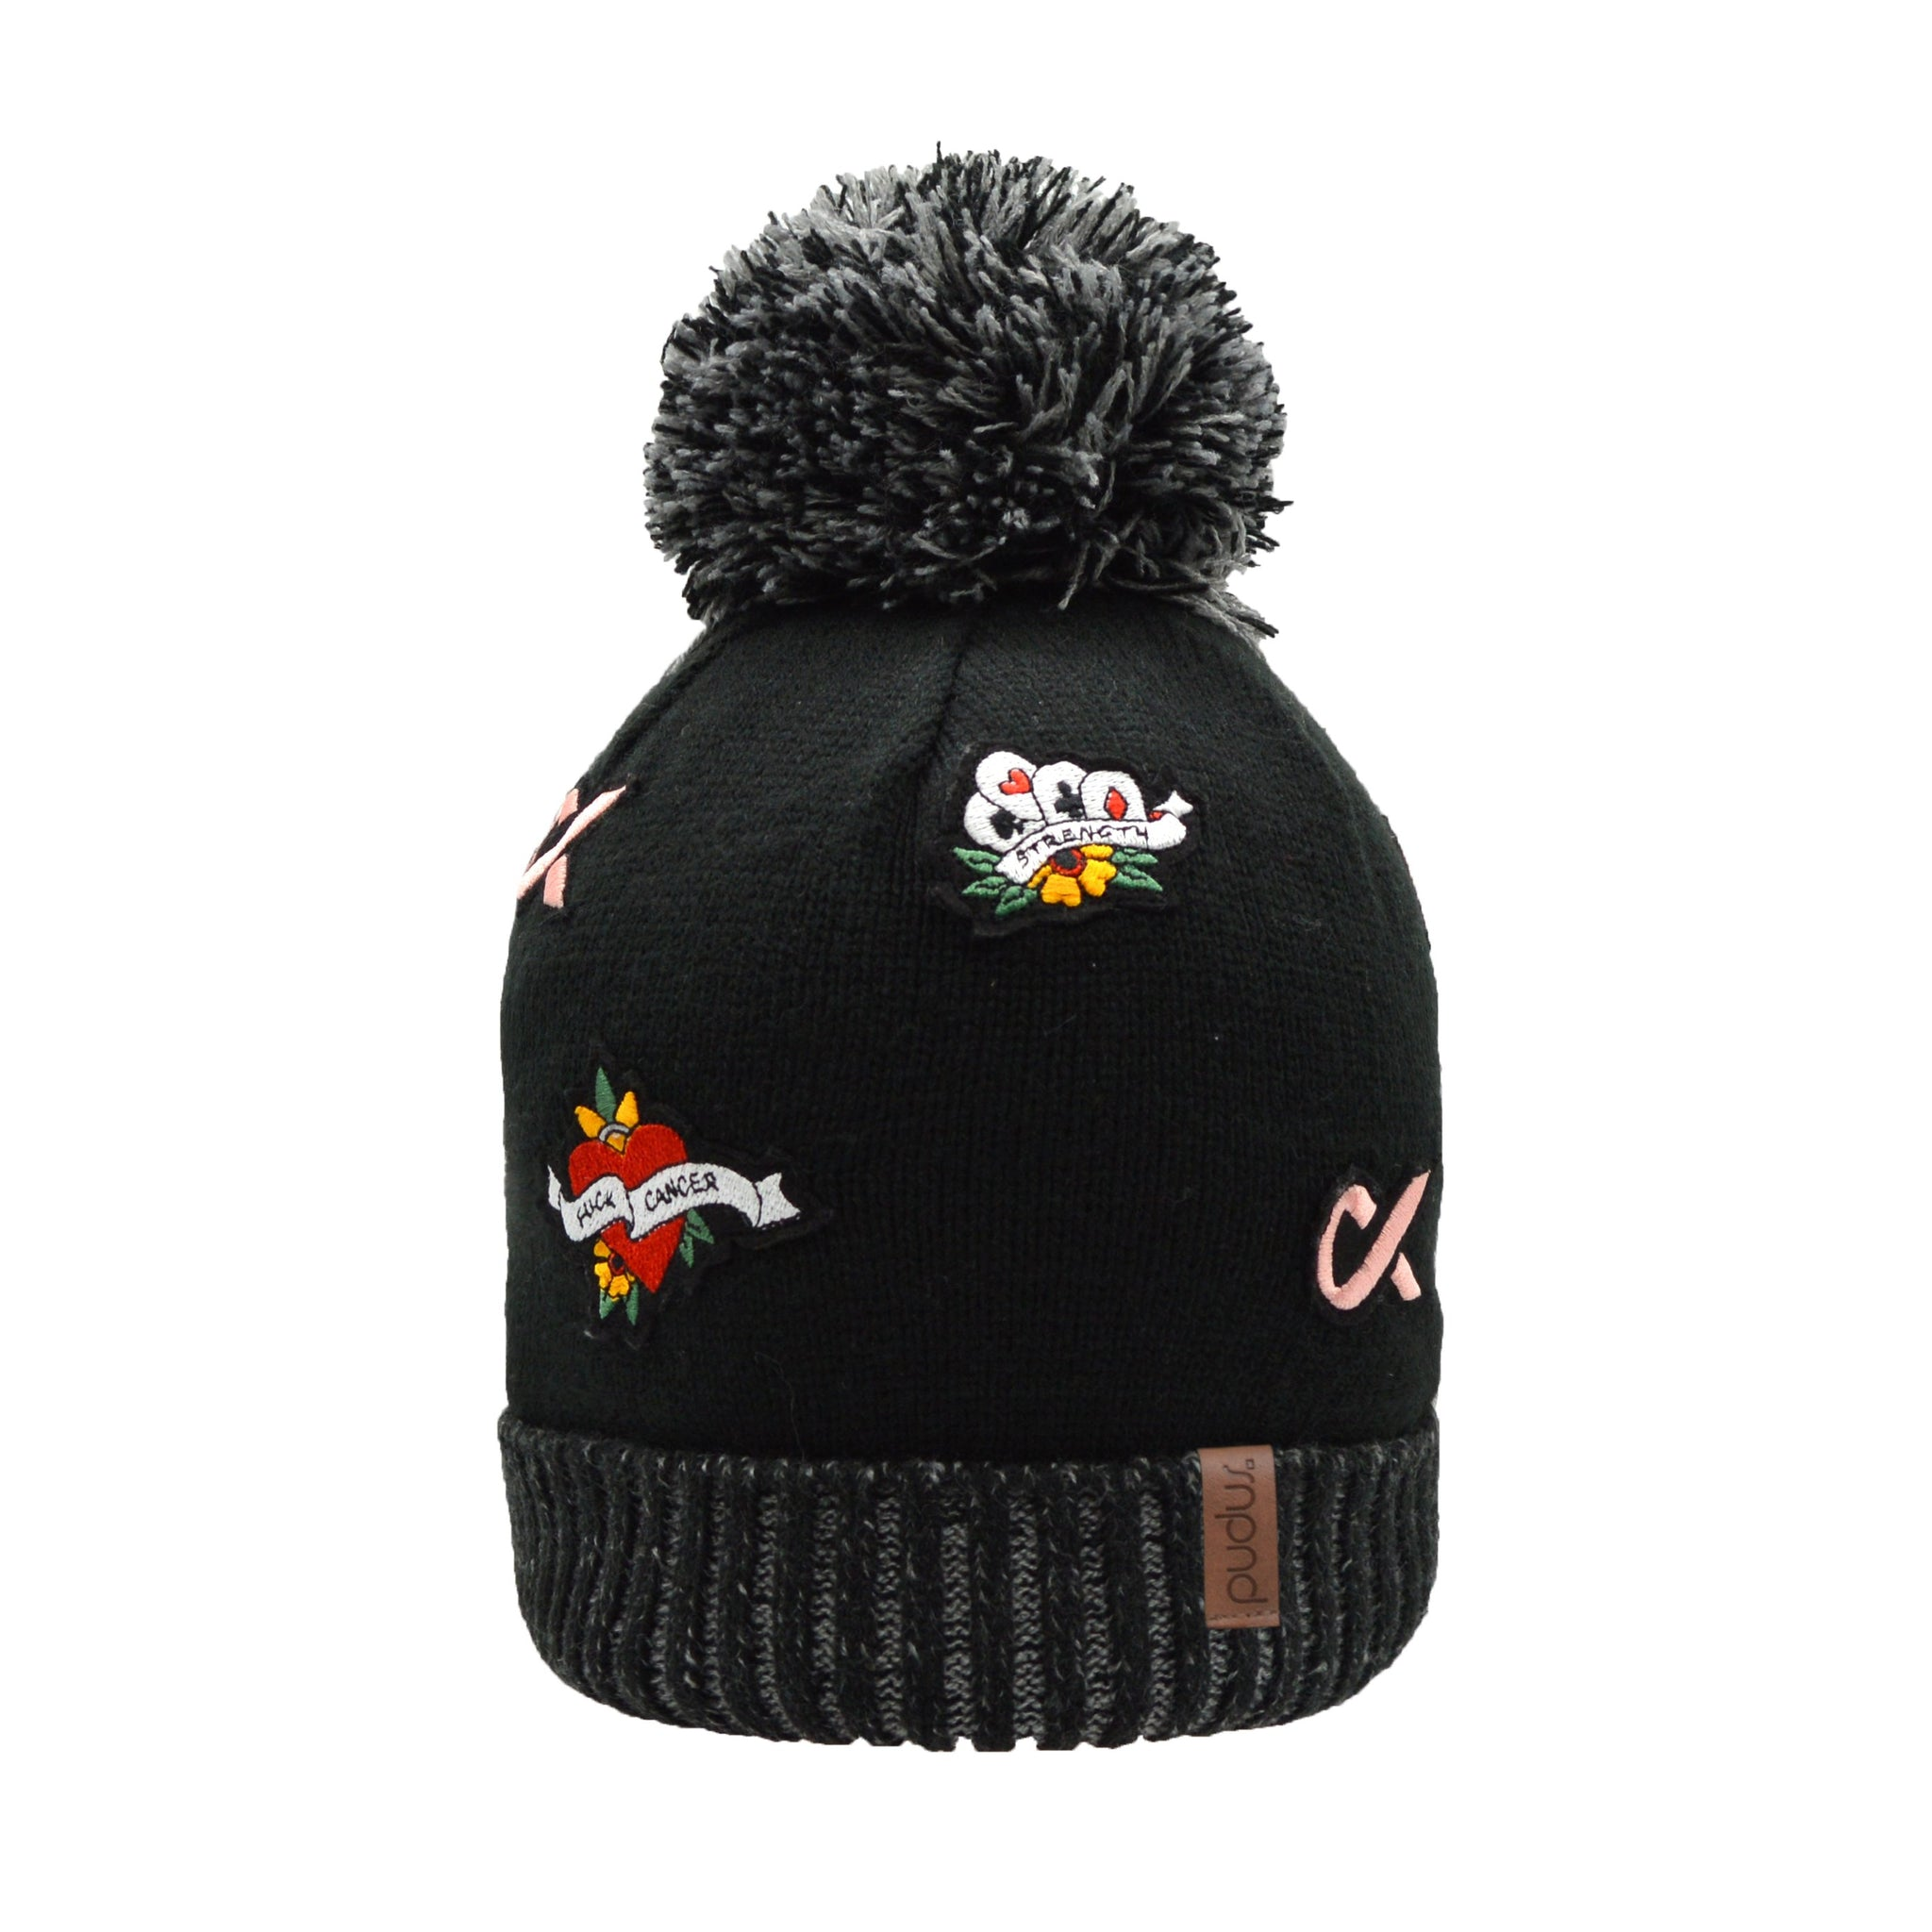 F Cancer x Pudus Toque Hat | Multi Patch